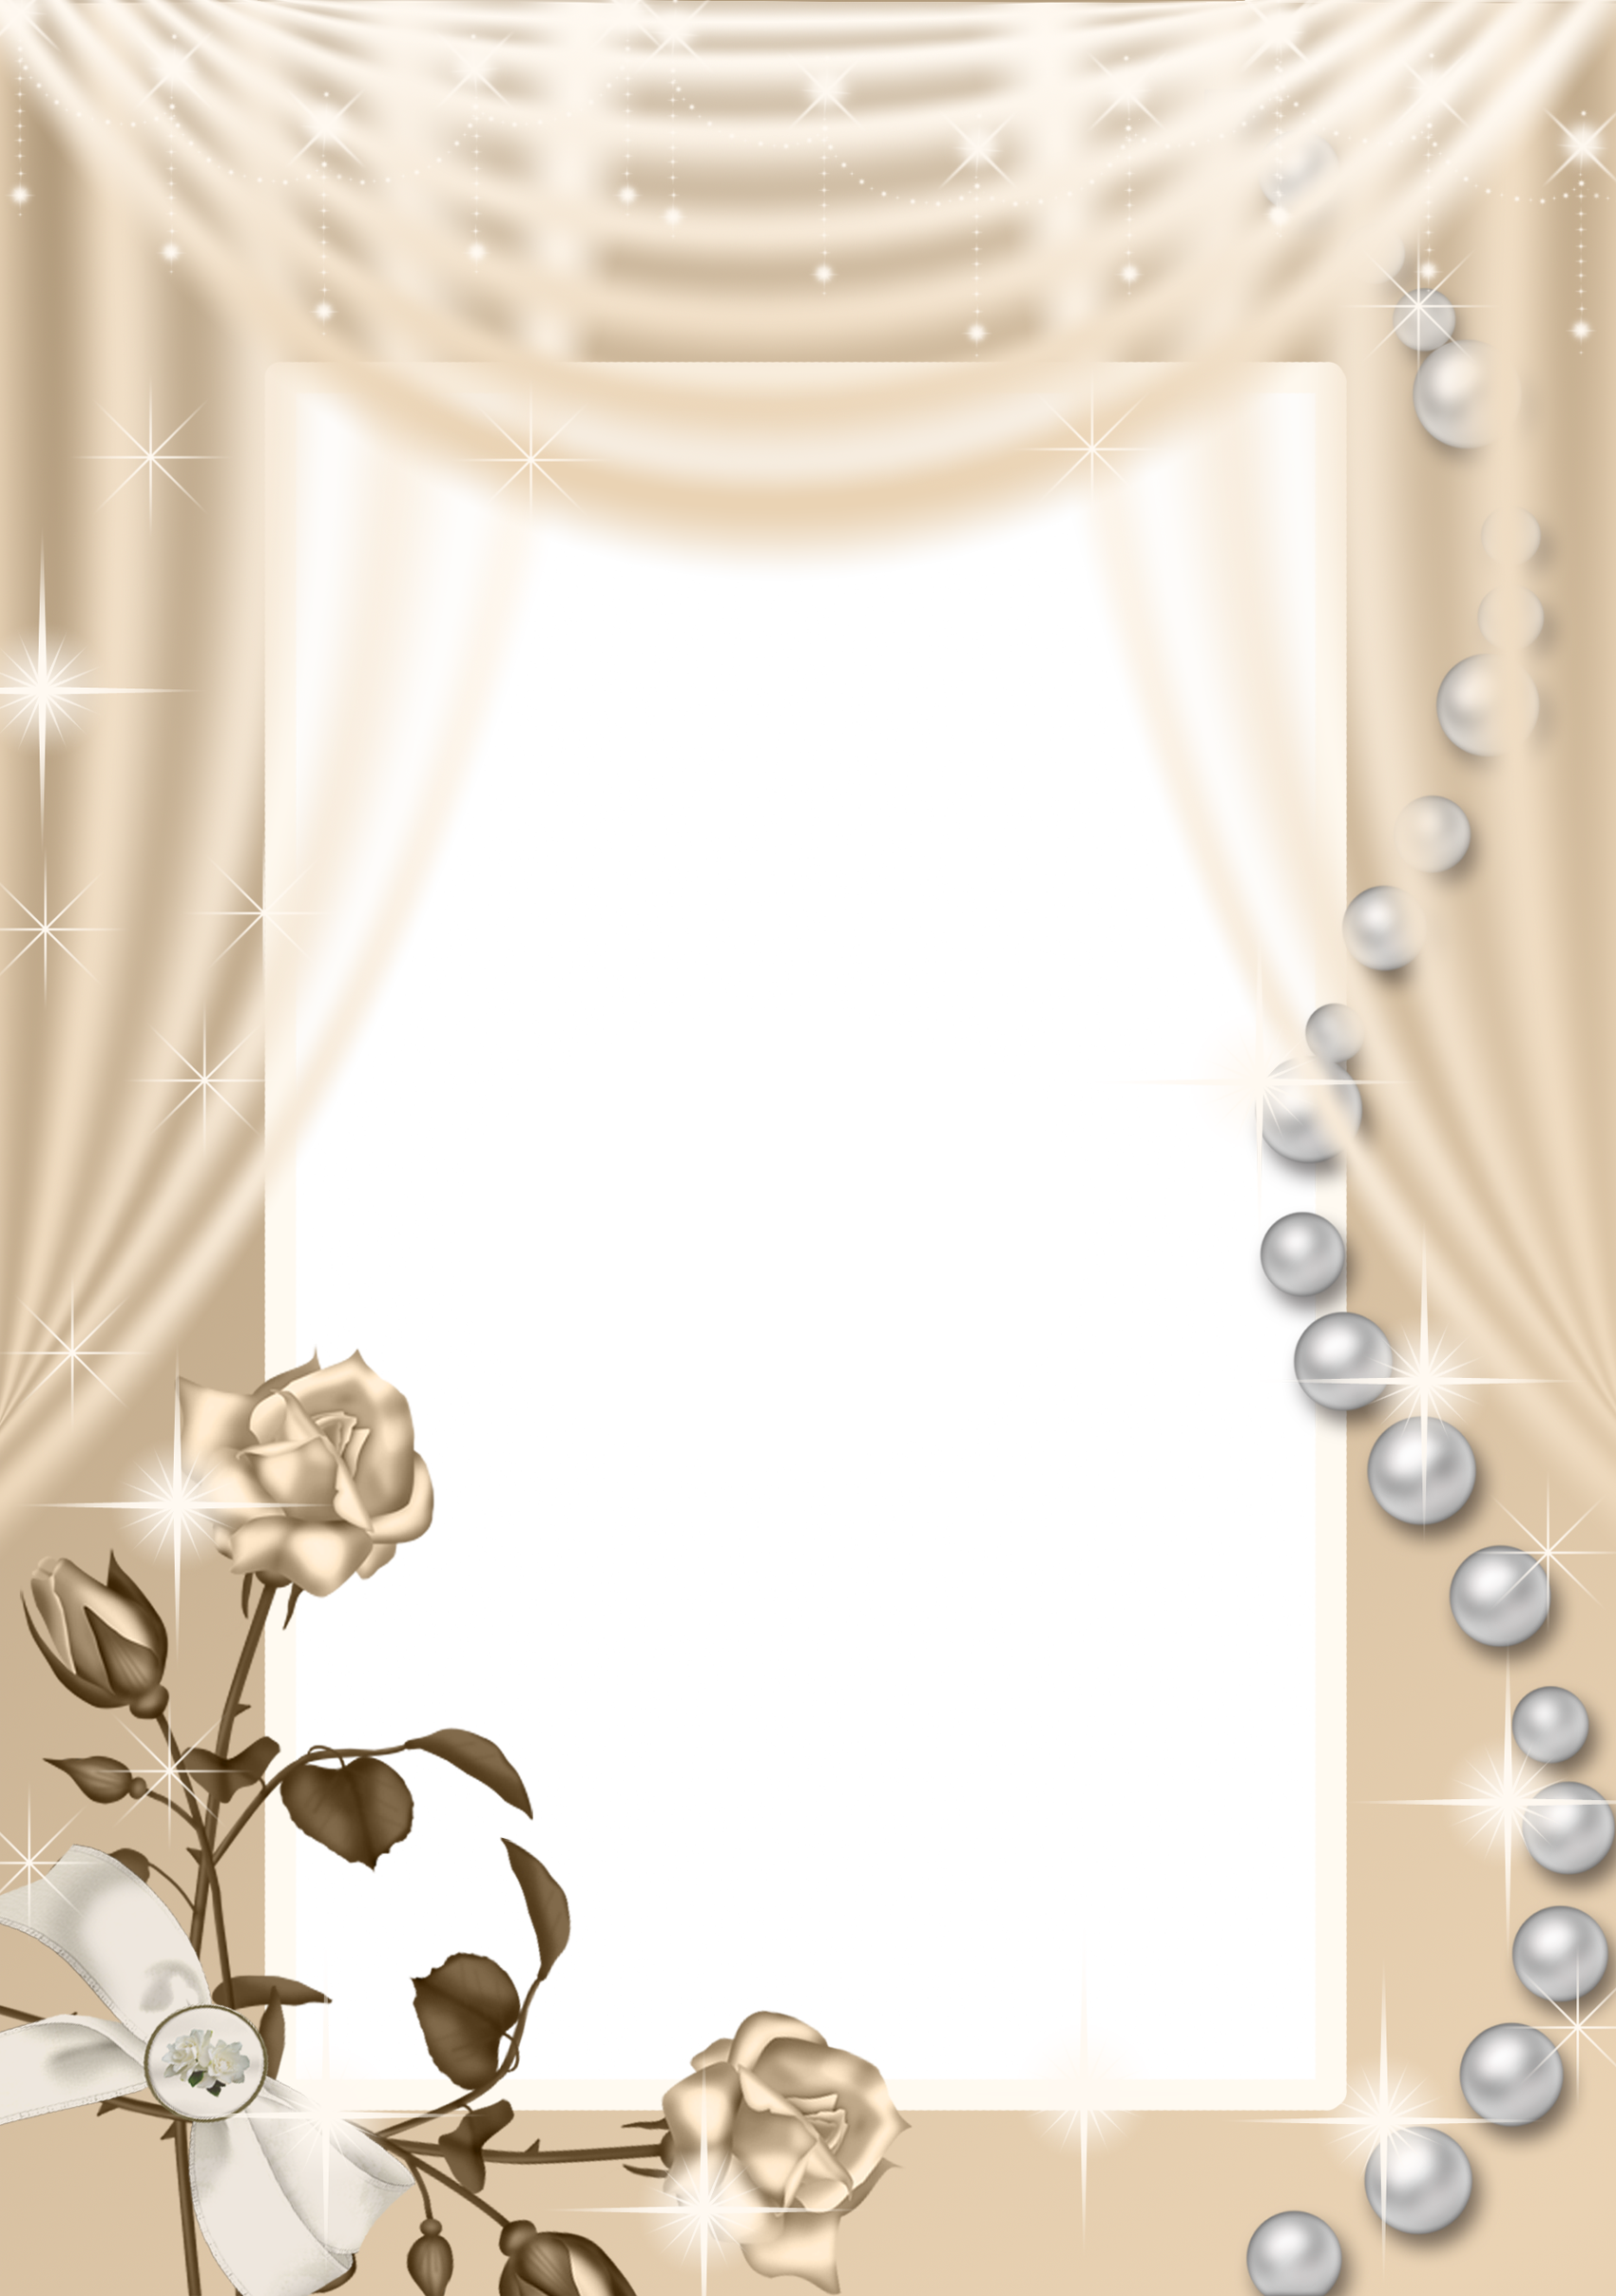 Png roses frame gallery. Curtain clipart cream